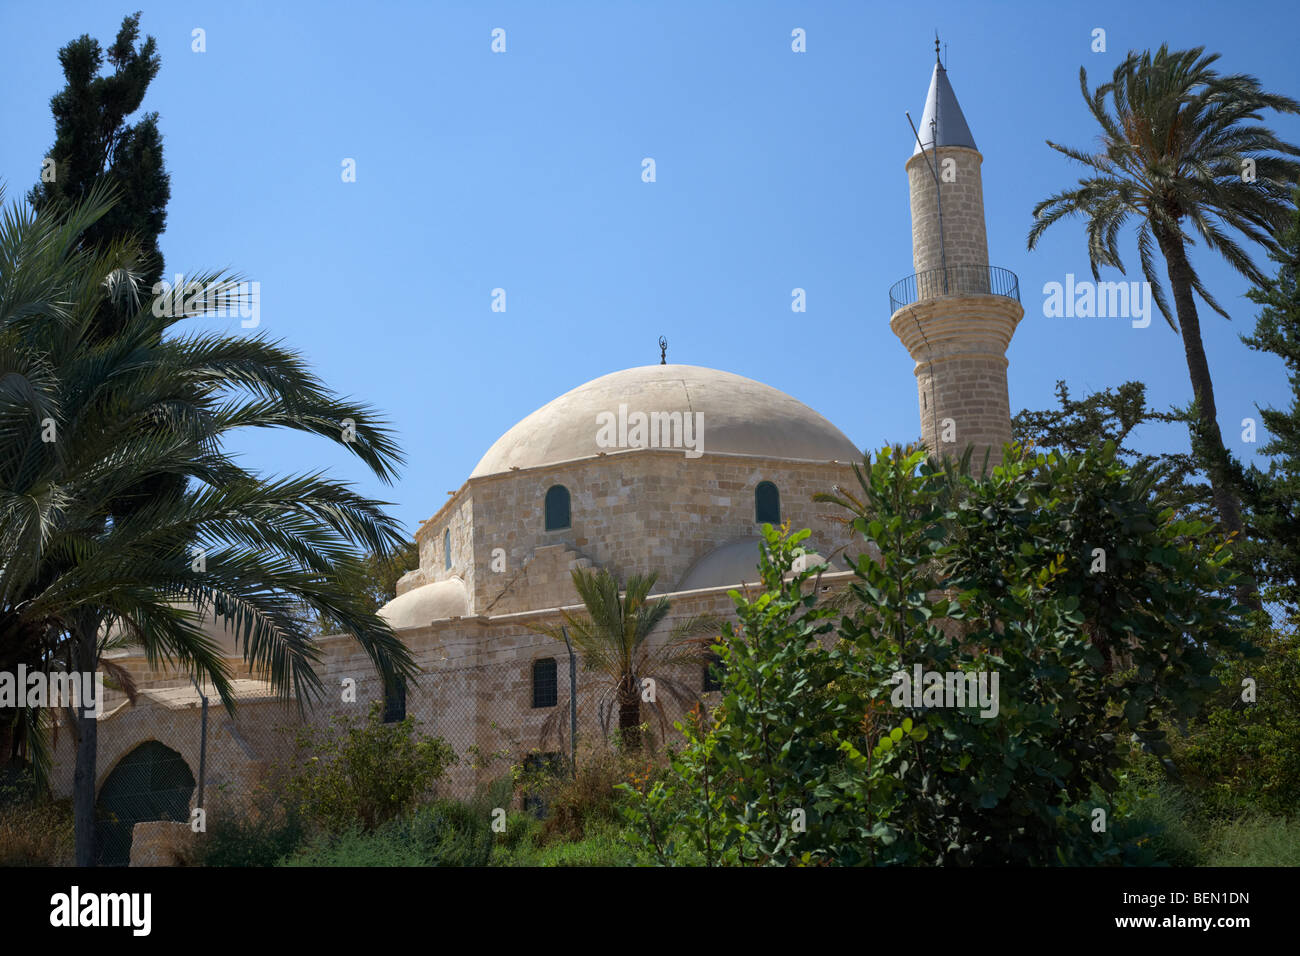 hala sultan tekke mosque larnaca republic of cyprus the umm haram mosque is the third holiest place in the muslim - Stock Image